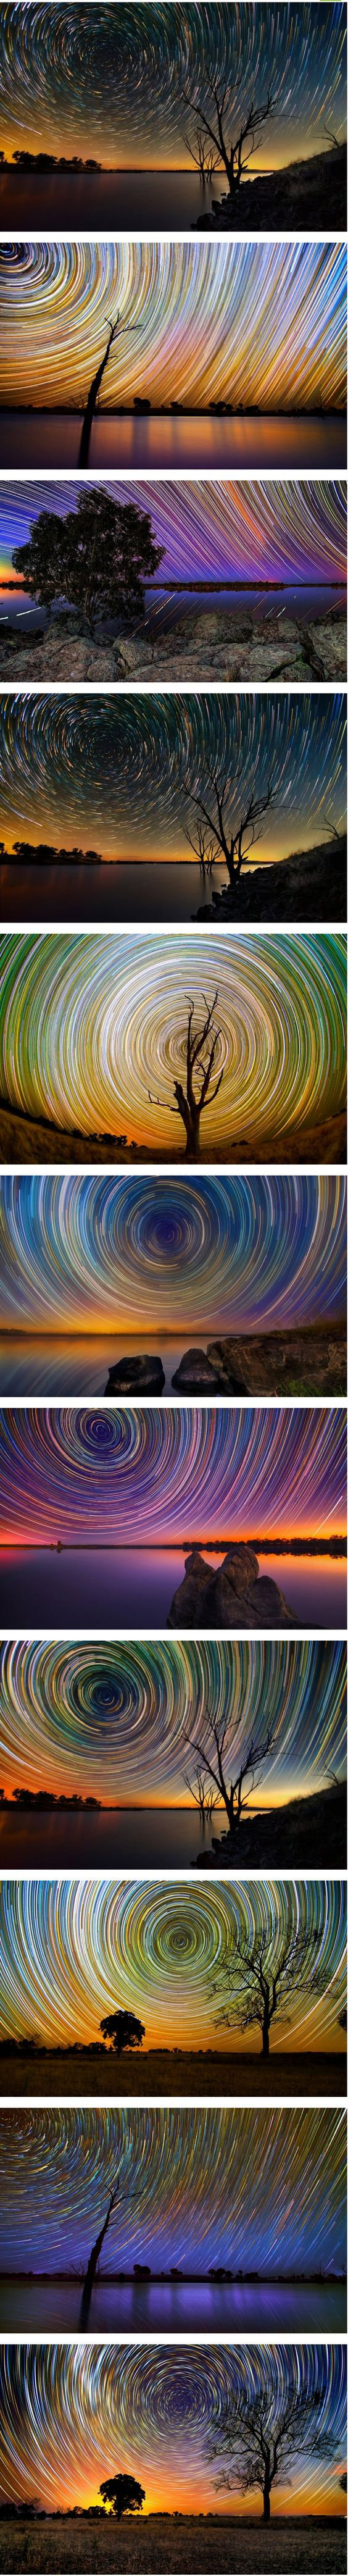 Whirl of StarsAmazing sky images from Australia-based photographer Lincoln Harrison who has been taking photos for less than two years.    In Harrison's photos, the rotation of the Earth makes the stars appear as if they're traveling across the sky. exposure 30-60mins